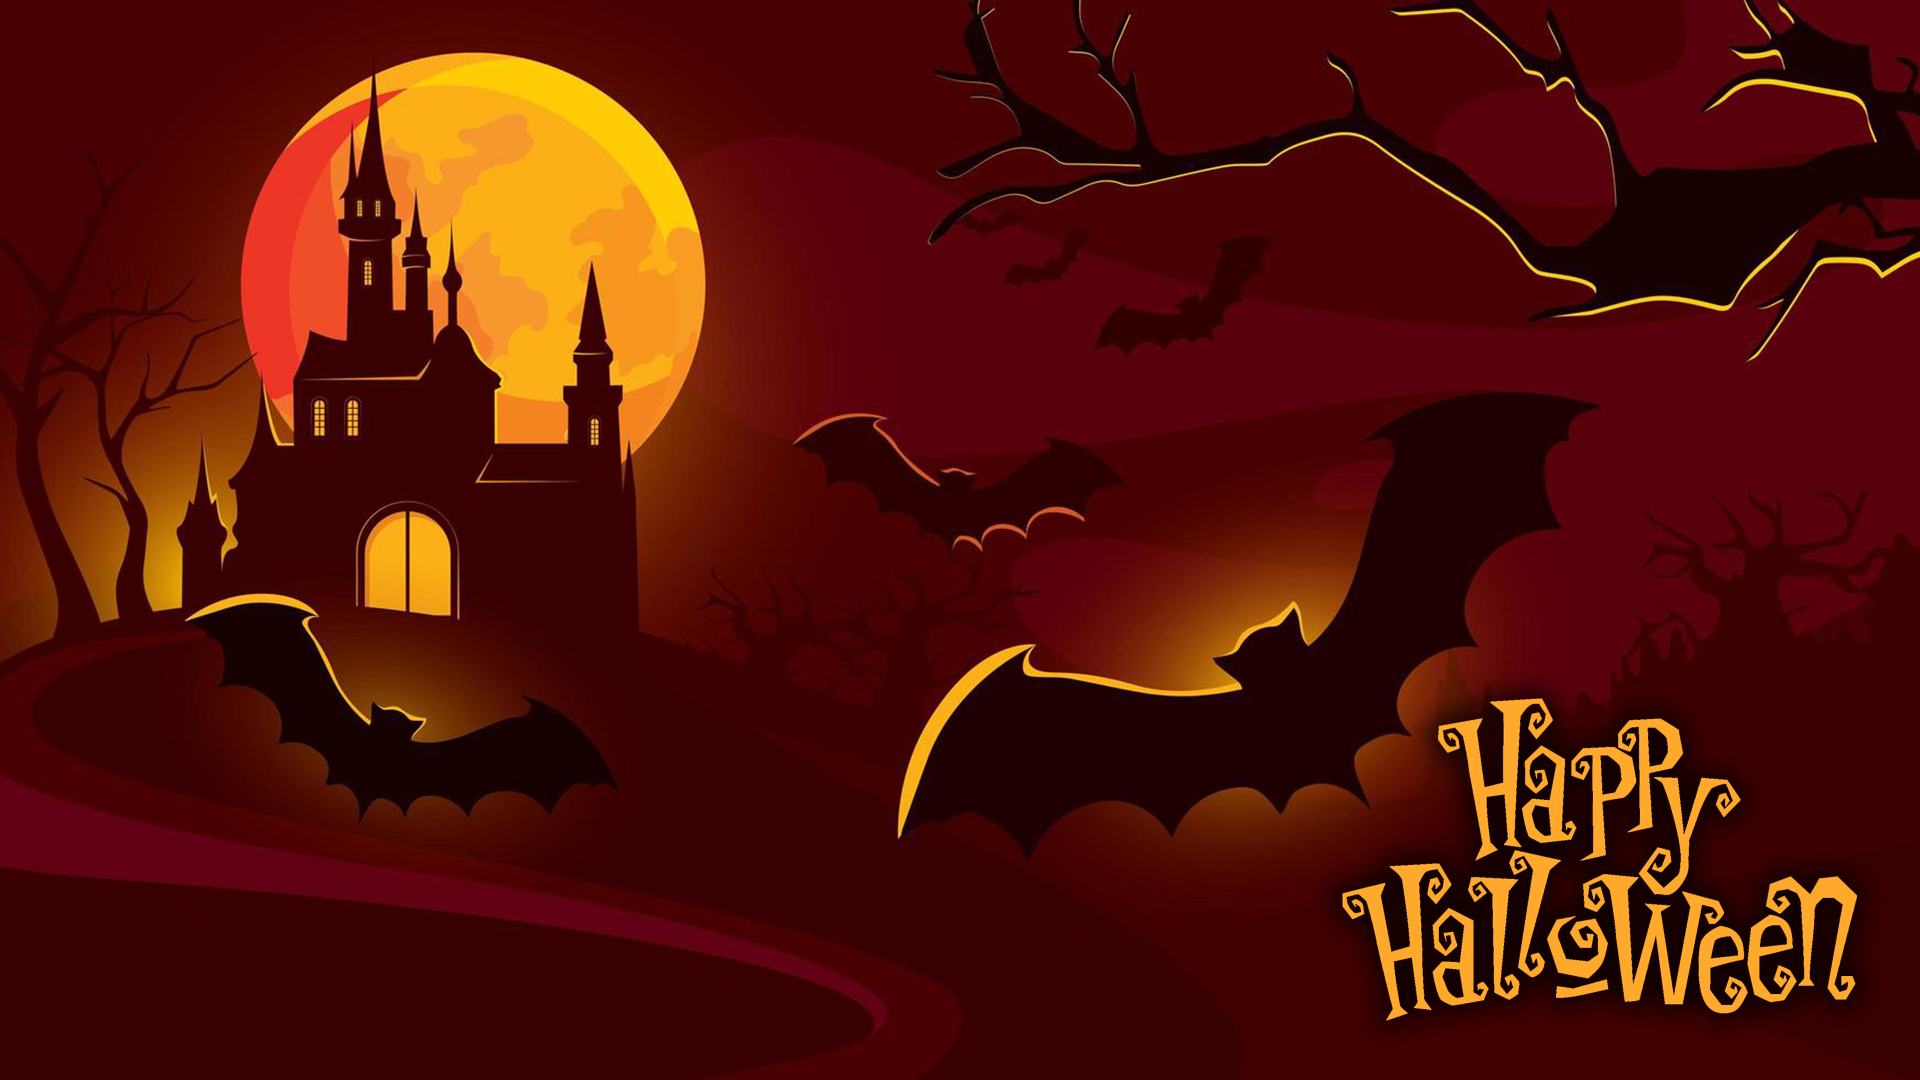 Halloween castle and flying bats. Virtual background to use on Zoom, Microsoft Teams, Skype, Google Meet, WebEx or any other compatible app.